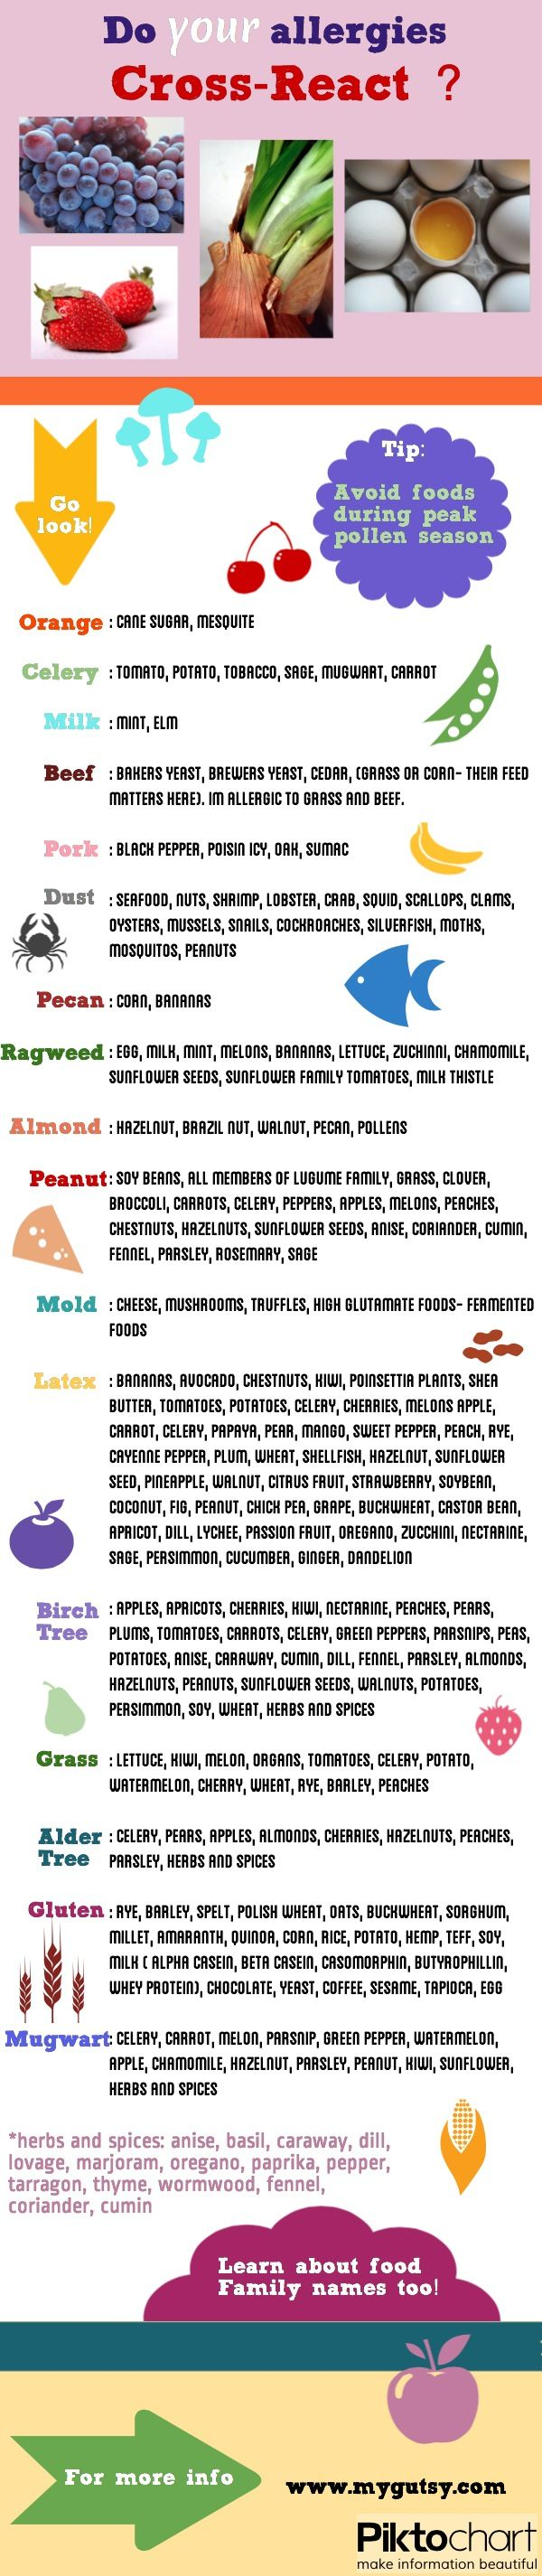 Do your allergies cross-react?  Interesting, I'm highly allergic to latex & have problems with about half the foods on the cross reaction list.